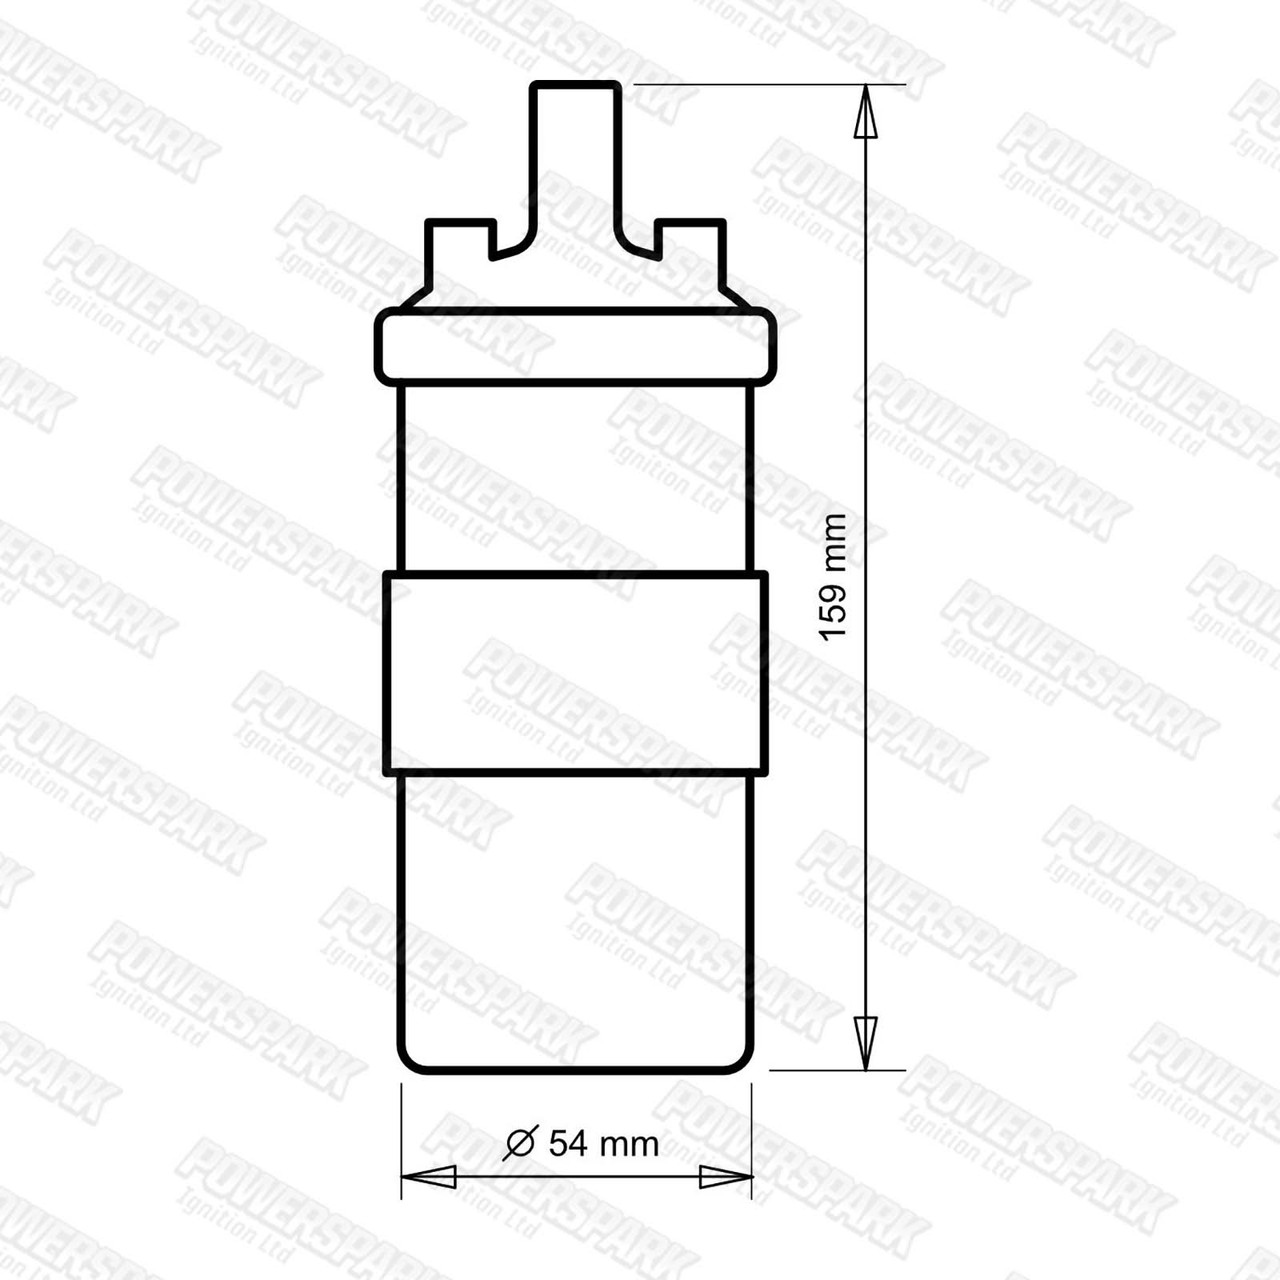 Viper Dry Ignition Coil Sports Ballast replaces DLB110 And DLB102